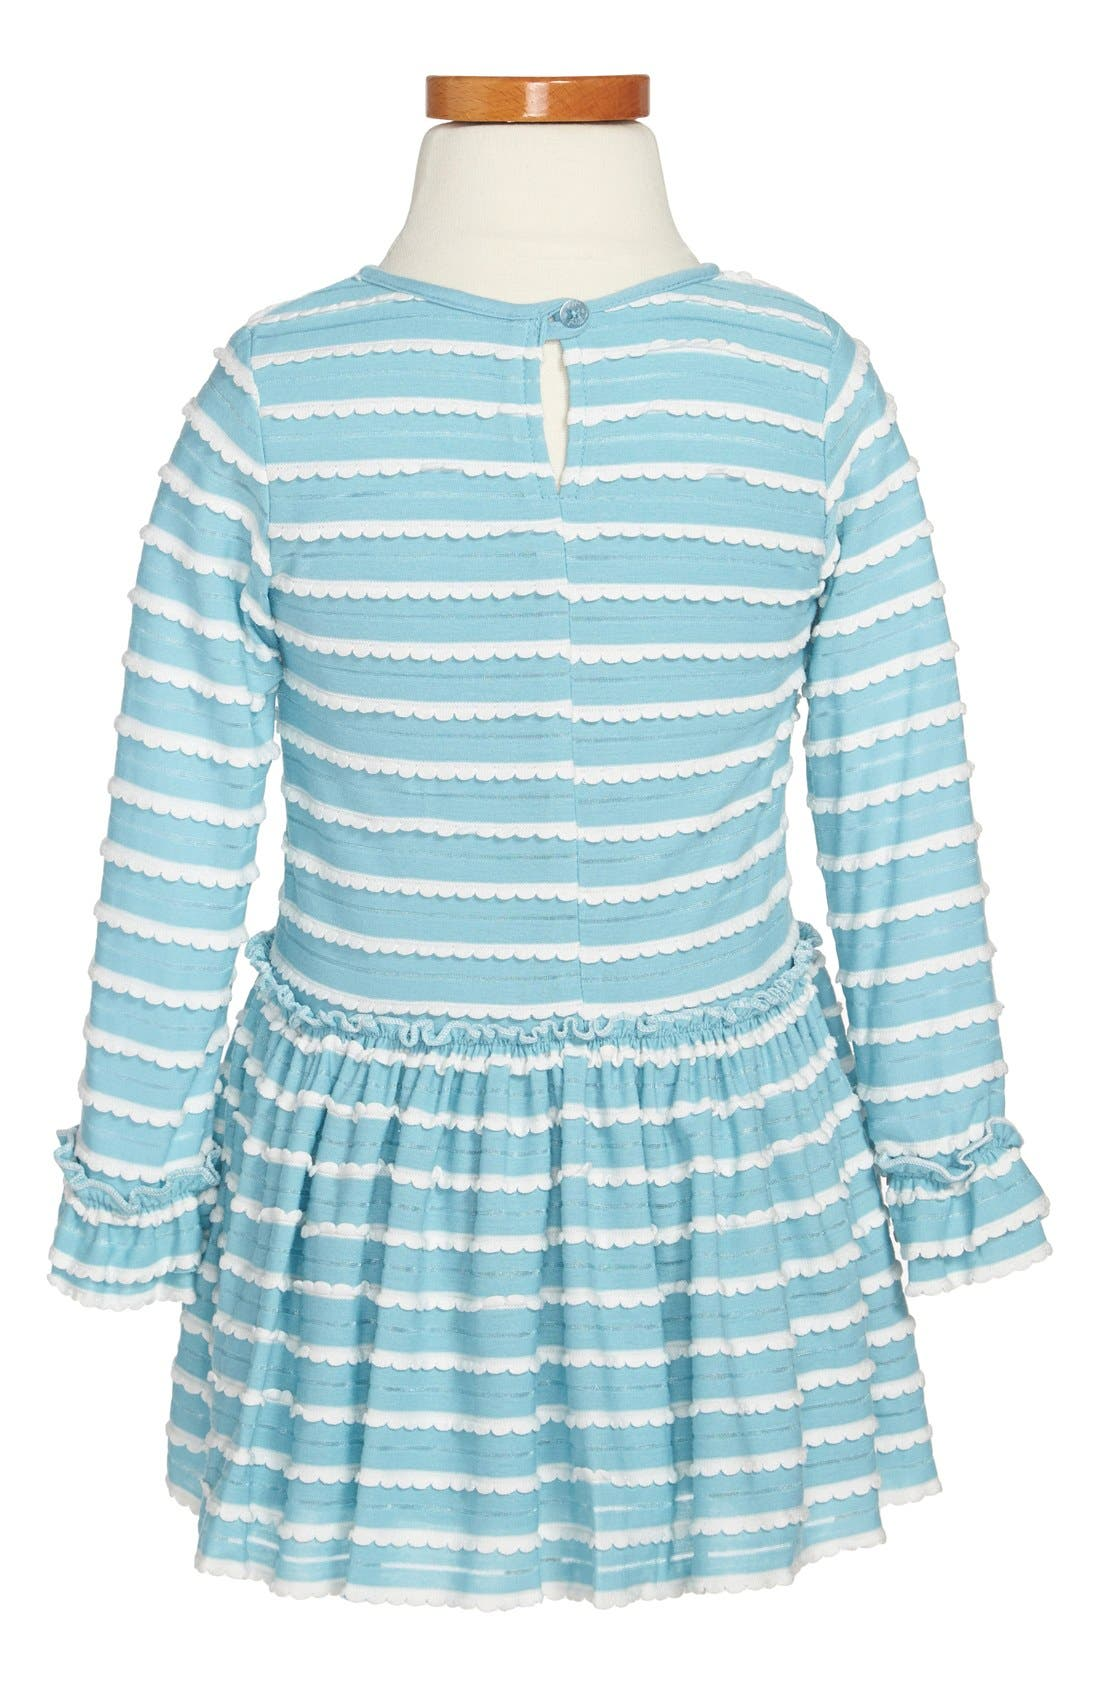 Alternate Image 2  - Pippa & Julie Scallop Knit Dress (Toddler Girls & Little Girls)